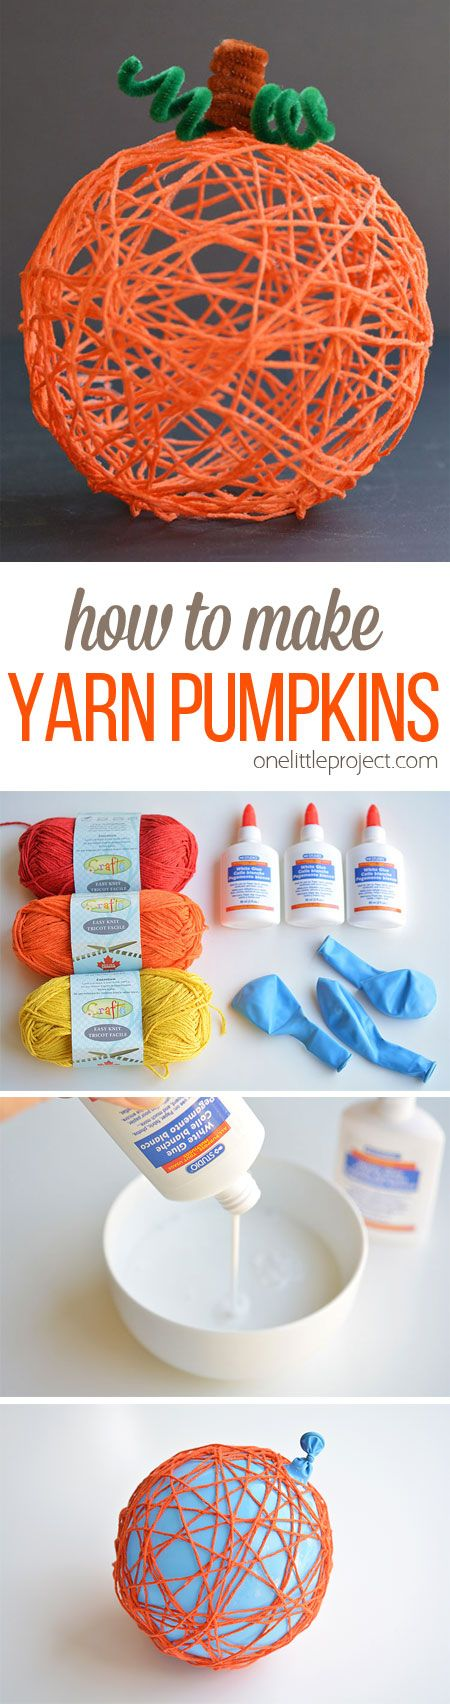 DIY Yarn Pumpkins Using Balloons.